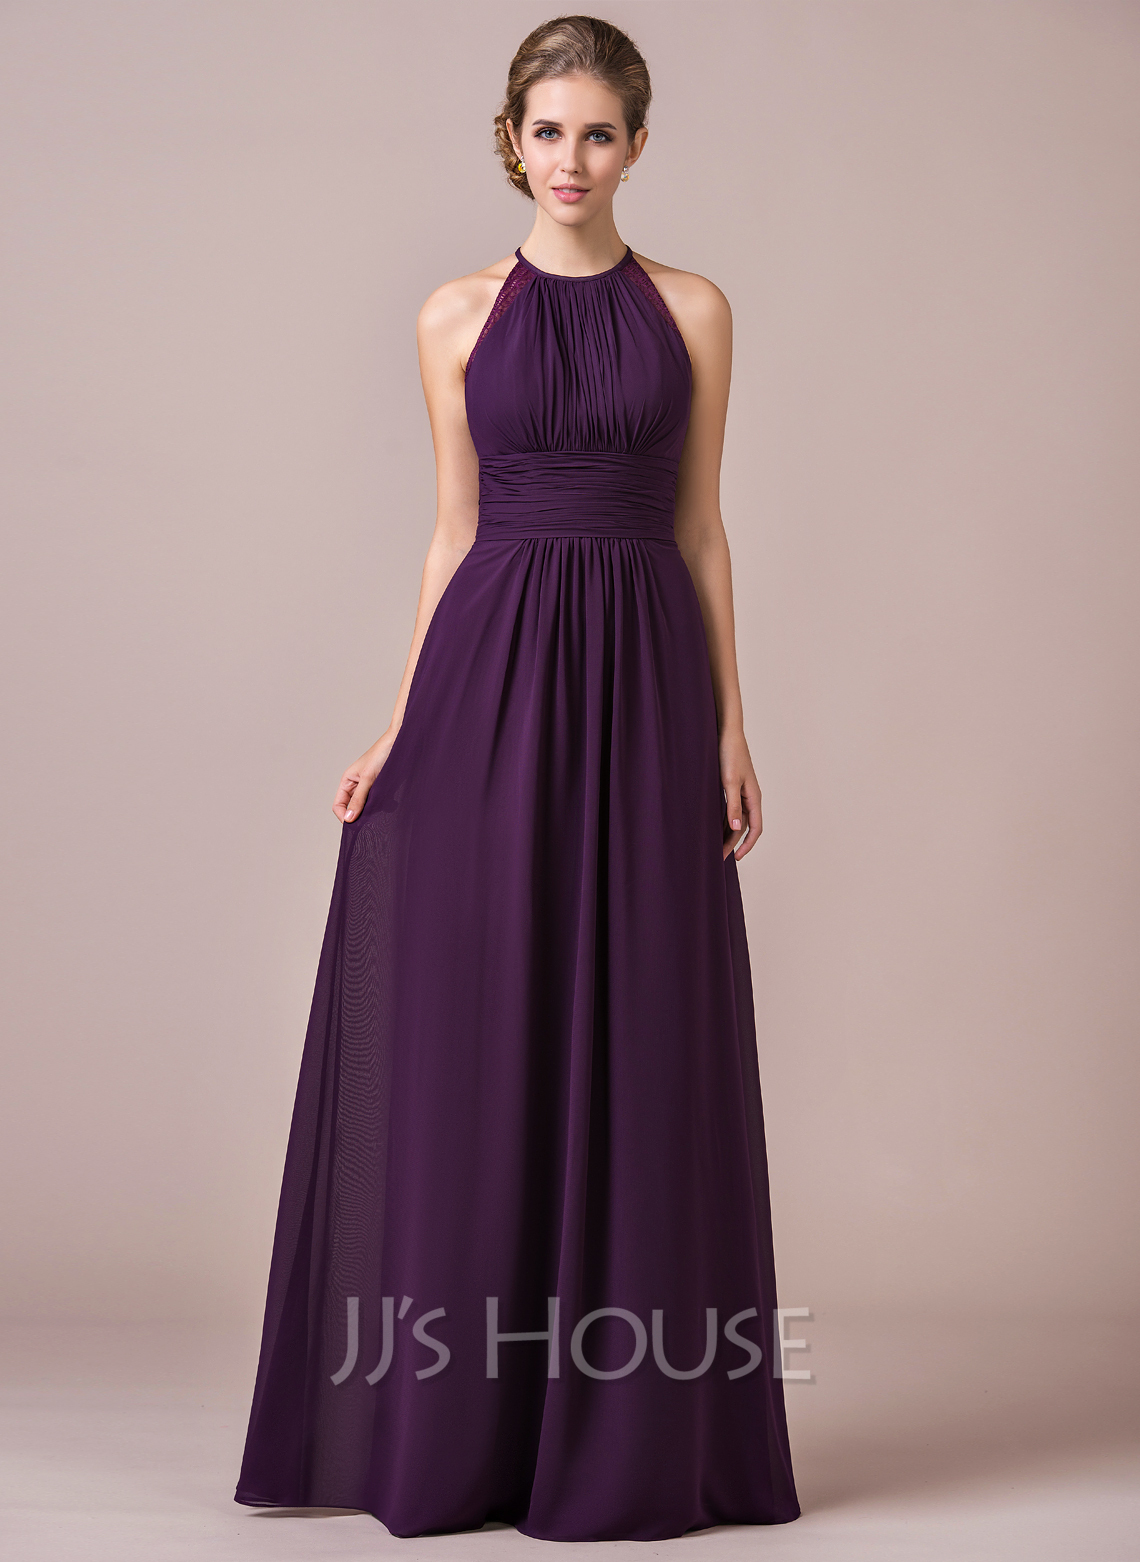 34cb9f4cd912c Chiffon Halter-neck Floor-length Bridesmaid Dress With Lace. Loading zoom